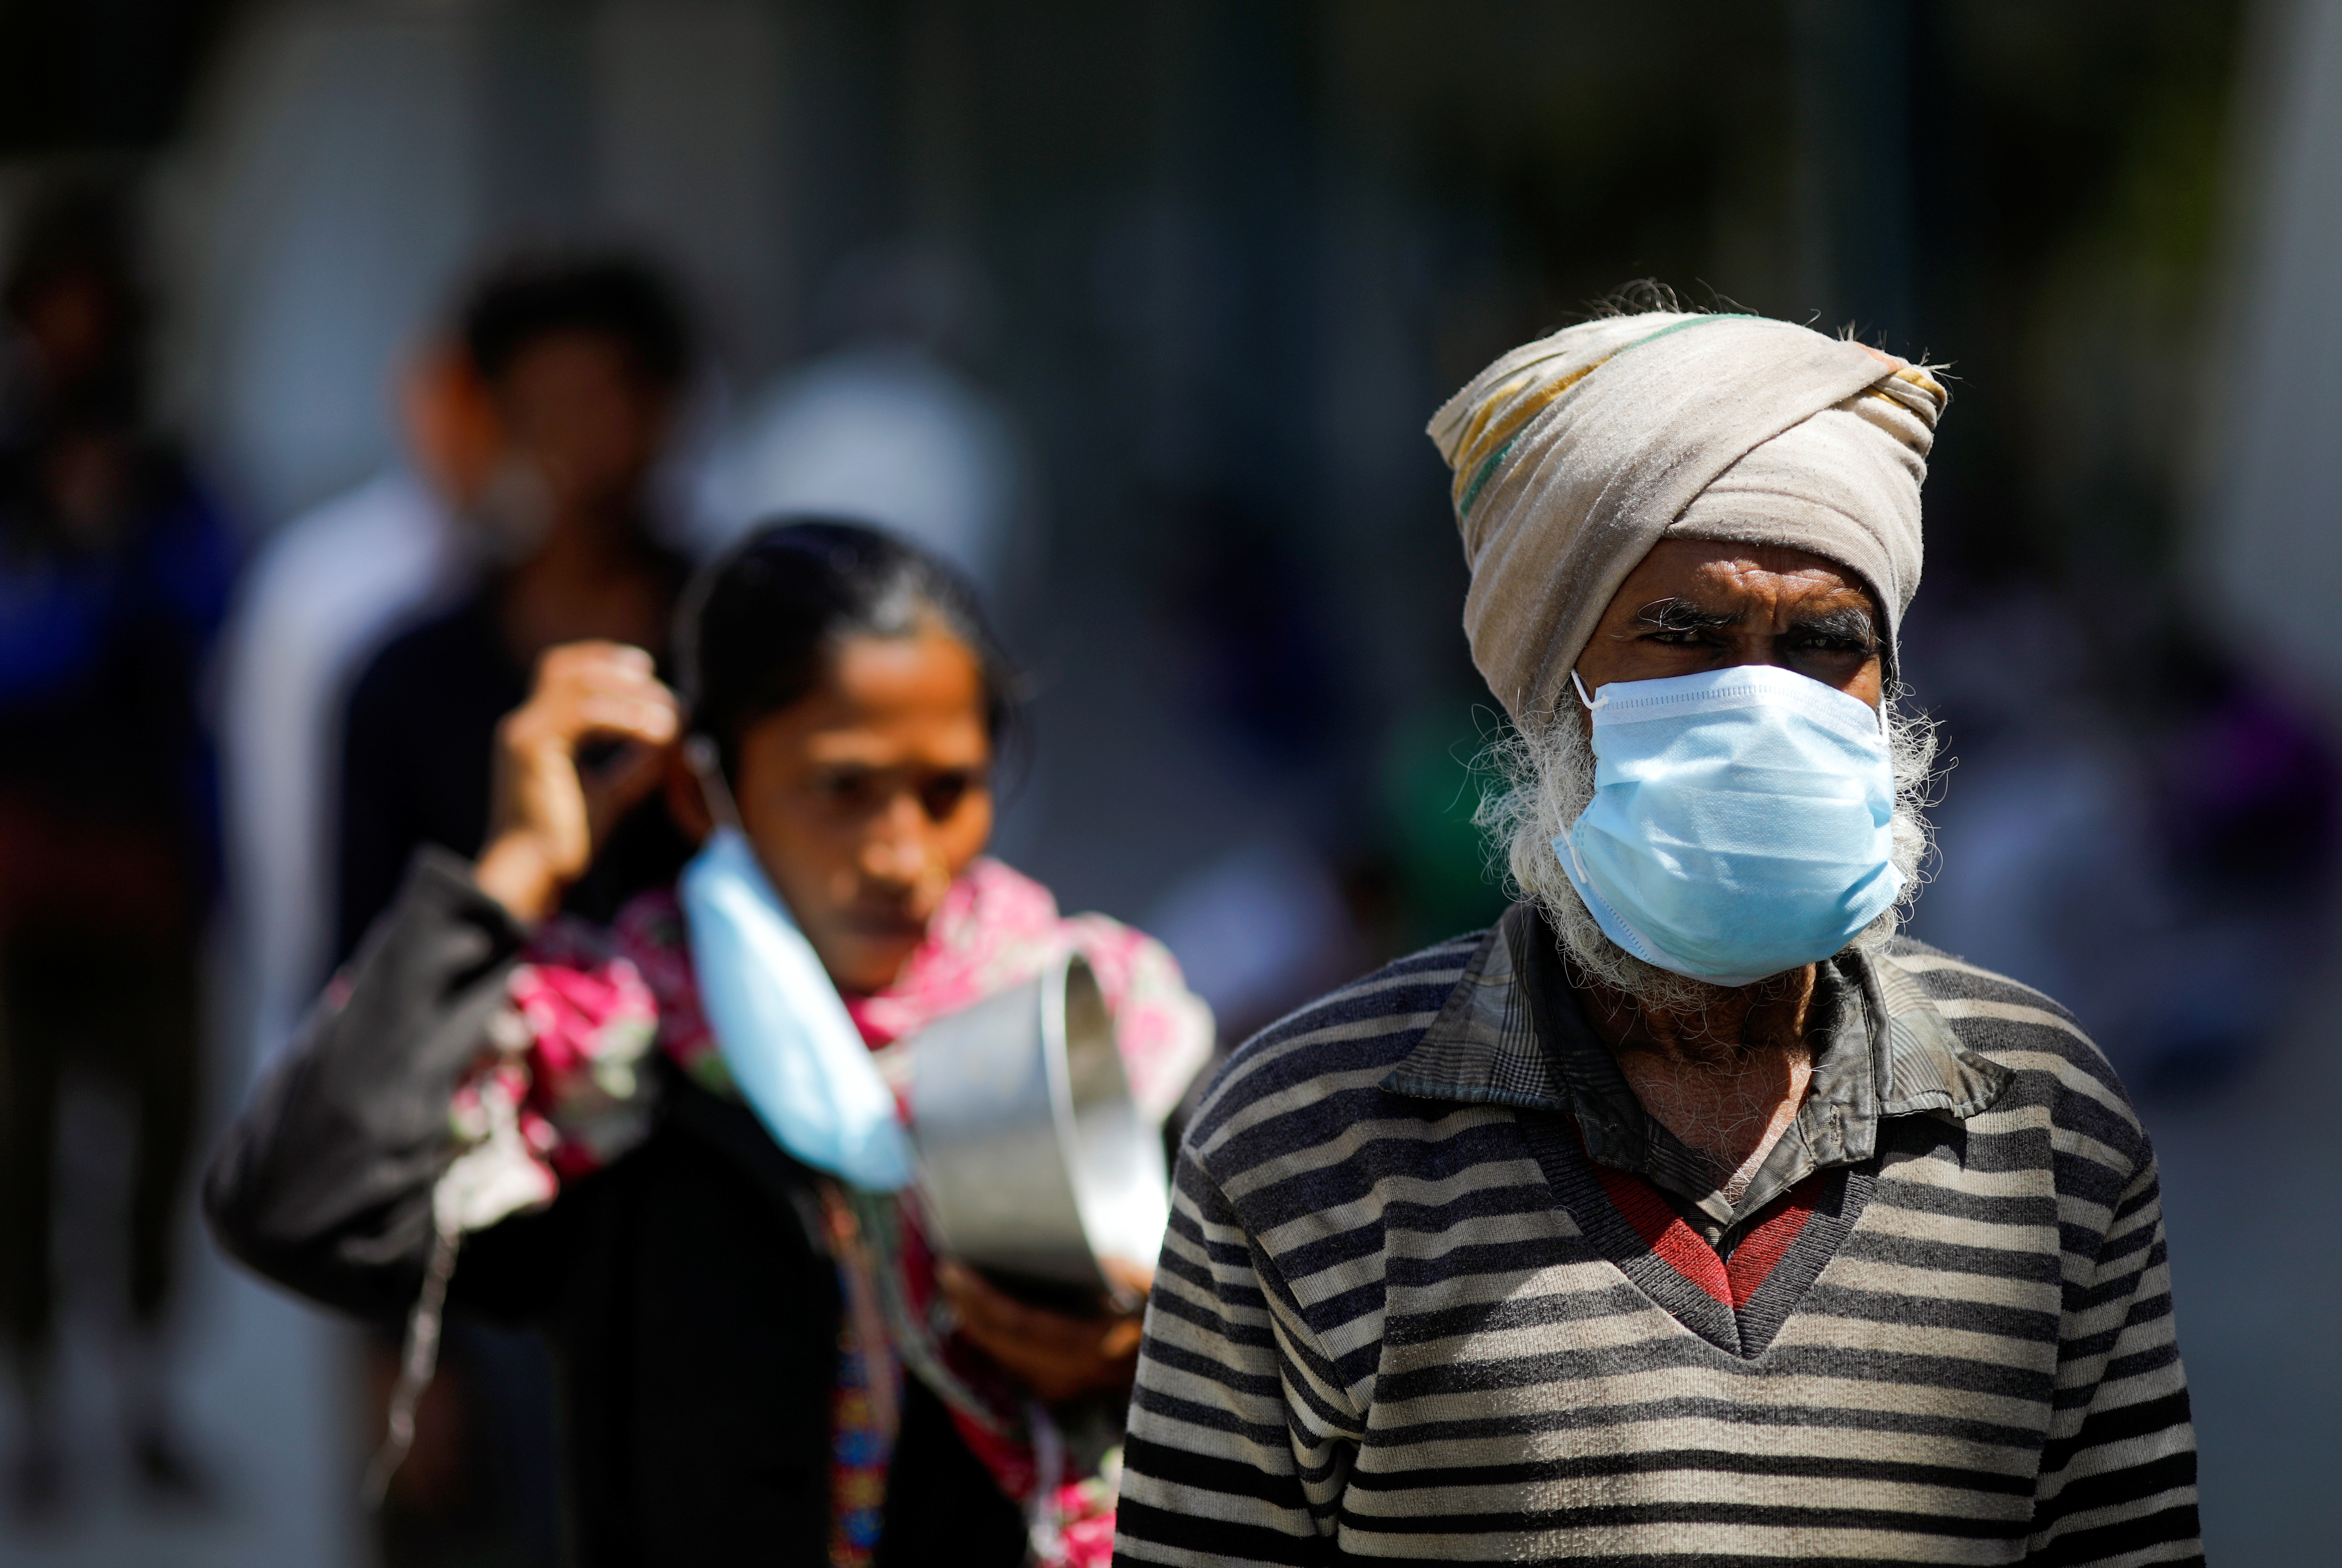 People wearing protective masks queue for food inside a sports complex turned into a shelter, during a 21-day nationwide lockdown to slow the spread of the coronavirus disease (COVID-19), in New Delhi, India, April 4, 2020. REUTERS/Adnan Abidi